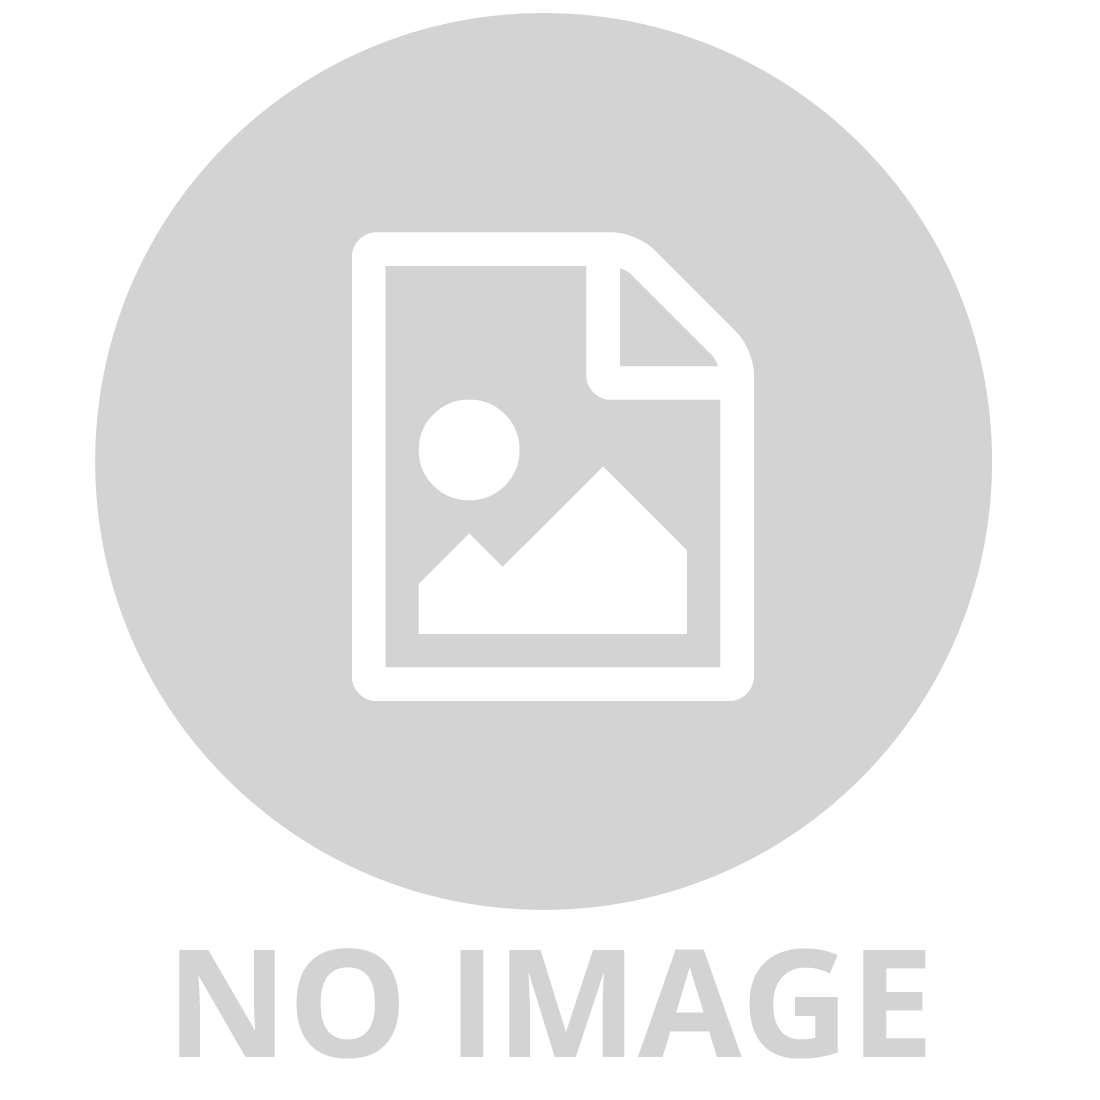 MOTOR MAX 1:24 GT RACING COLLECTION